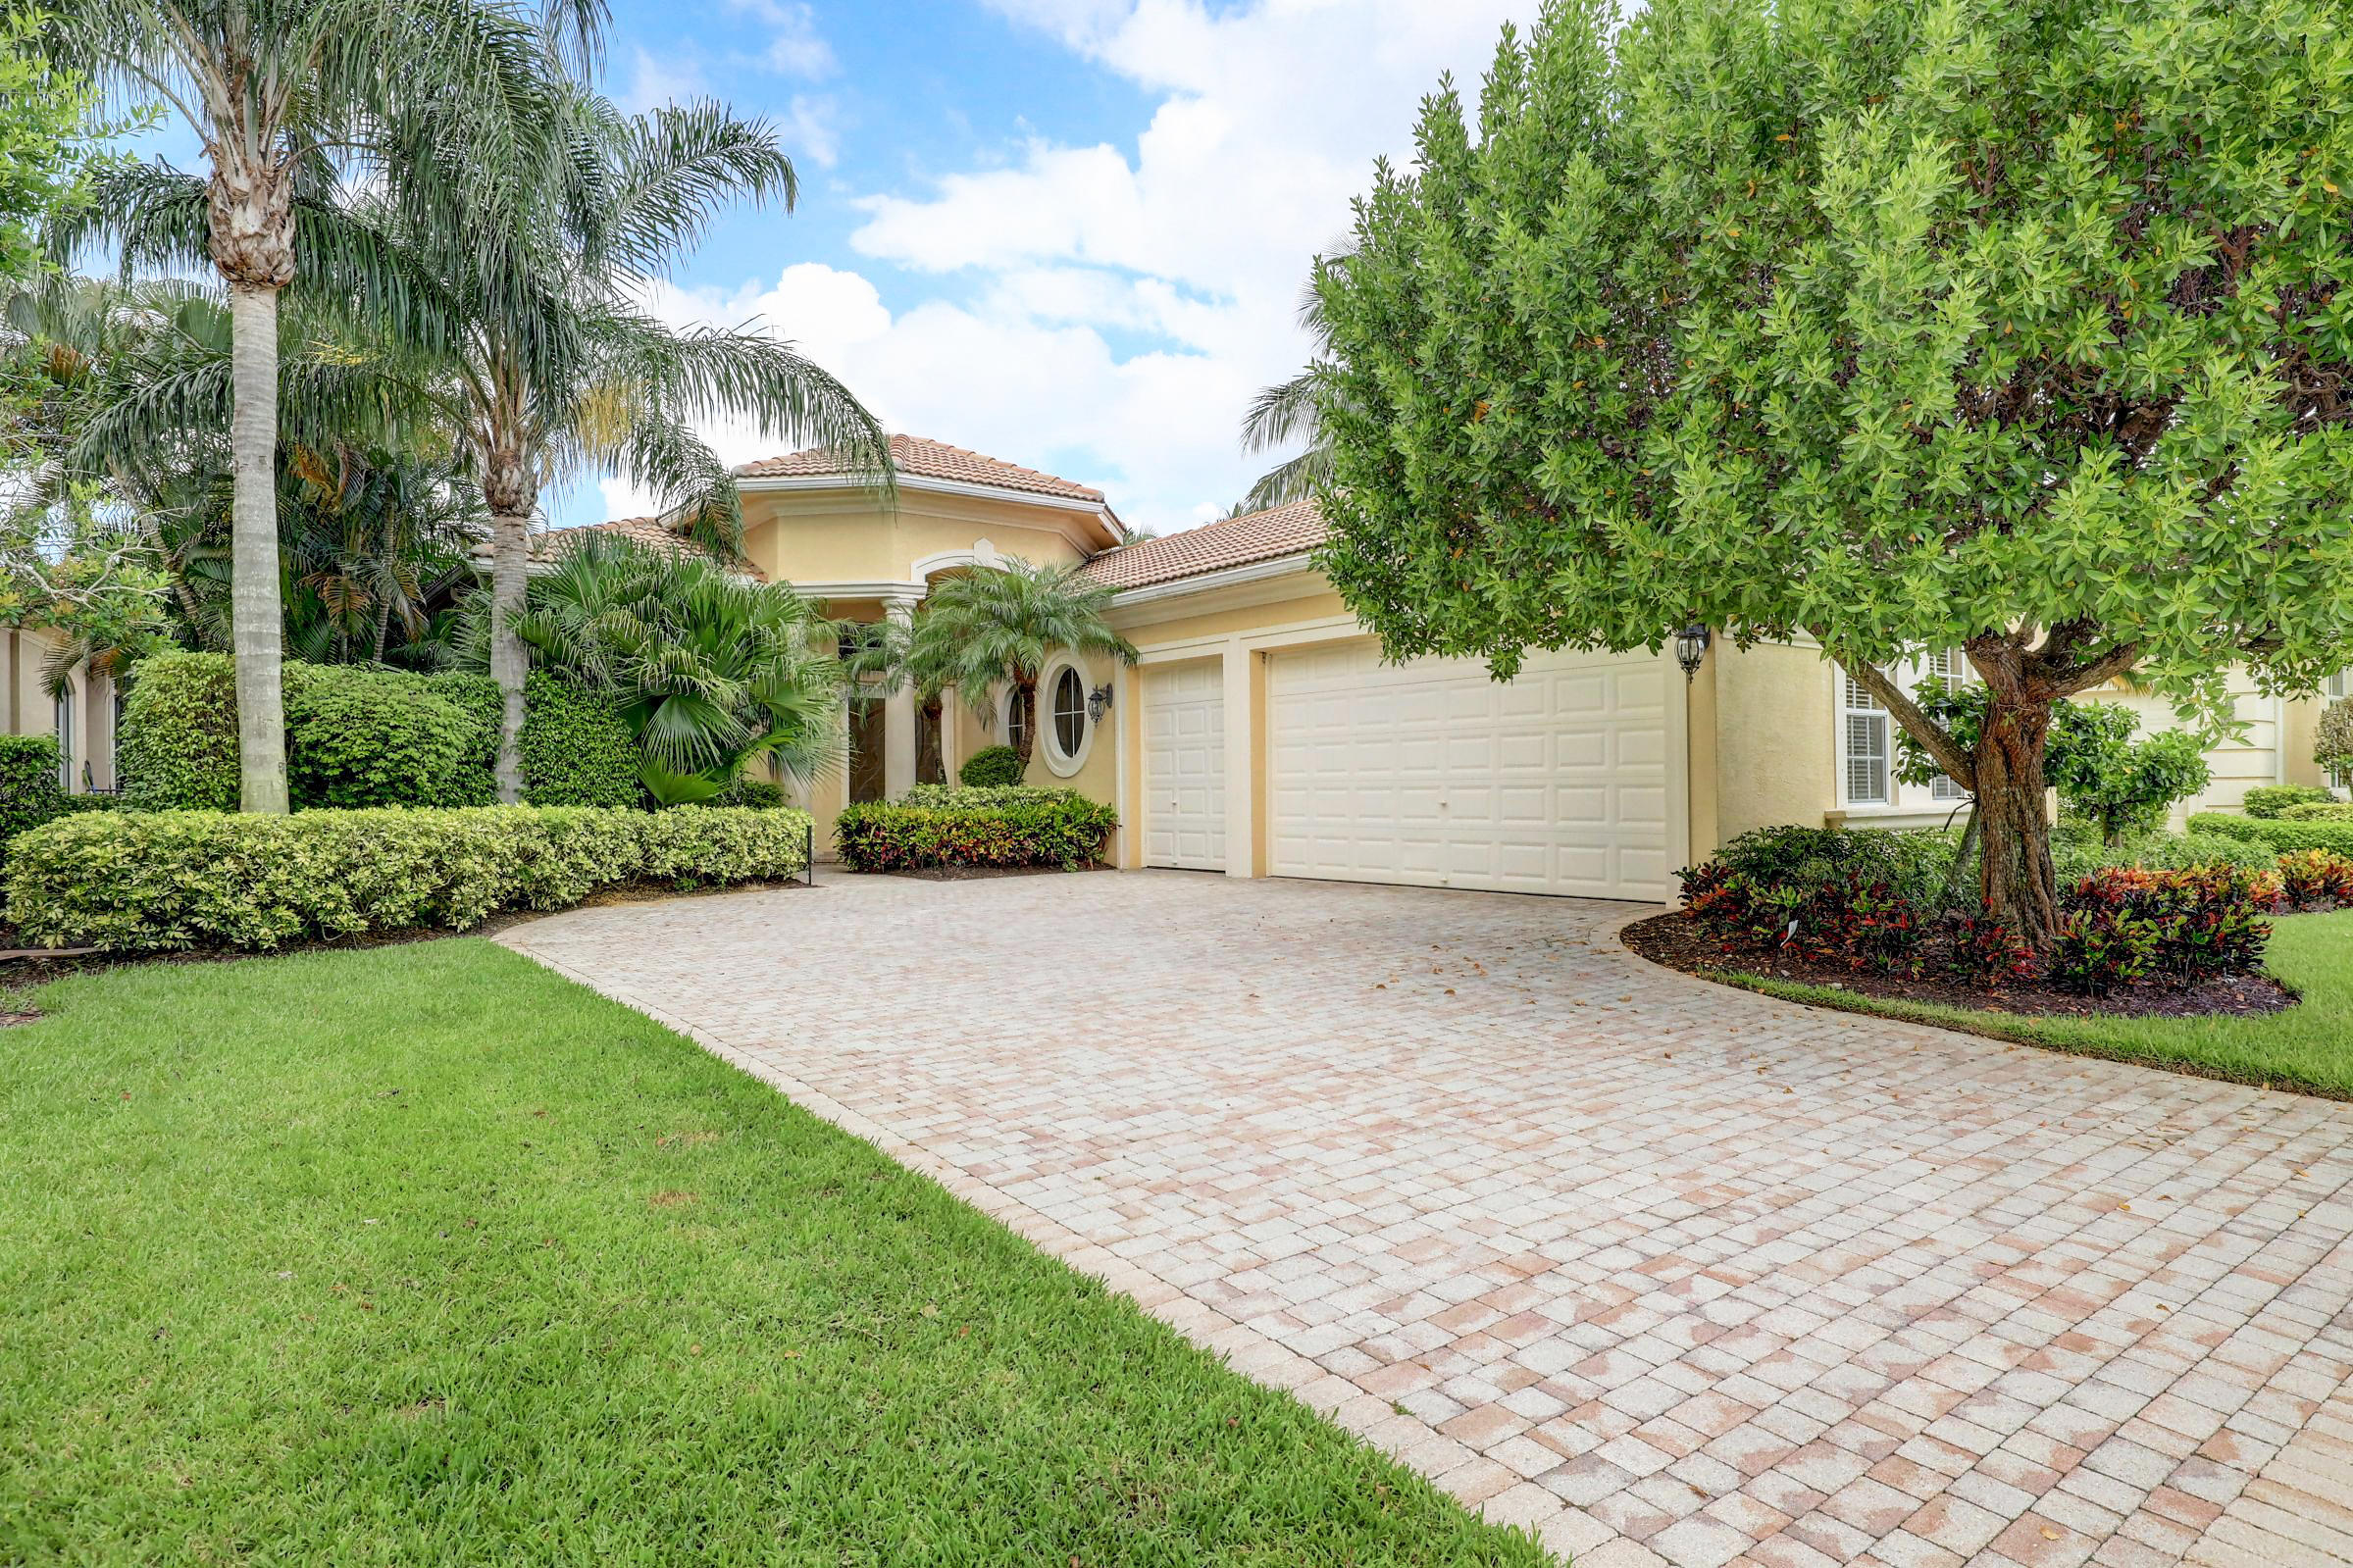 Details for 220 Porto Vecchio Way, Palm Beach Gardens, FL 33418